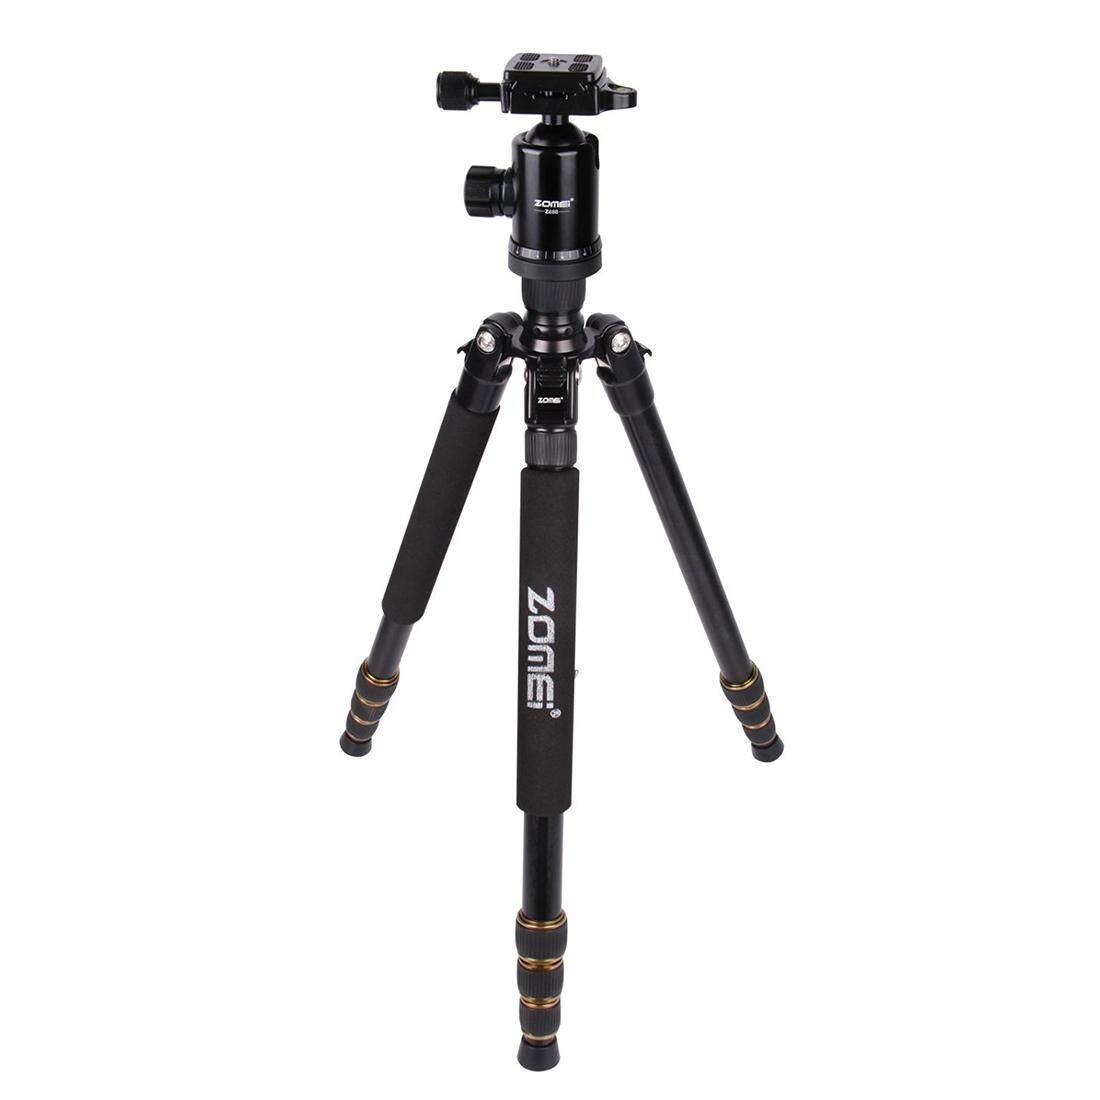 Tripods Monopods Buy At Best Price In Universal 2 1 Portable Mini Folding Tripod For Dslr Hitam Zomei Z688 Magnesium Alloy Monopod With Ball Head Camera